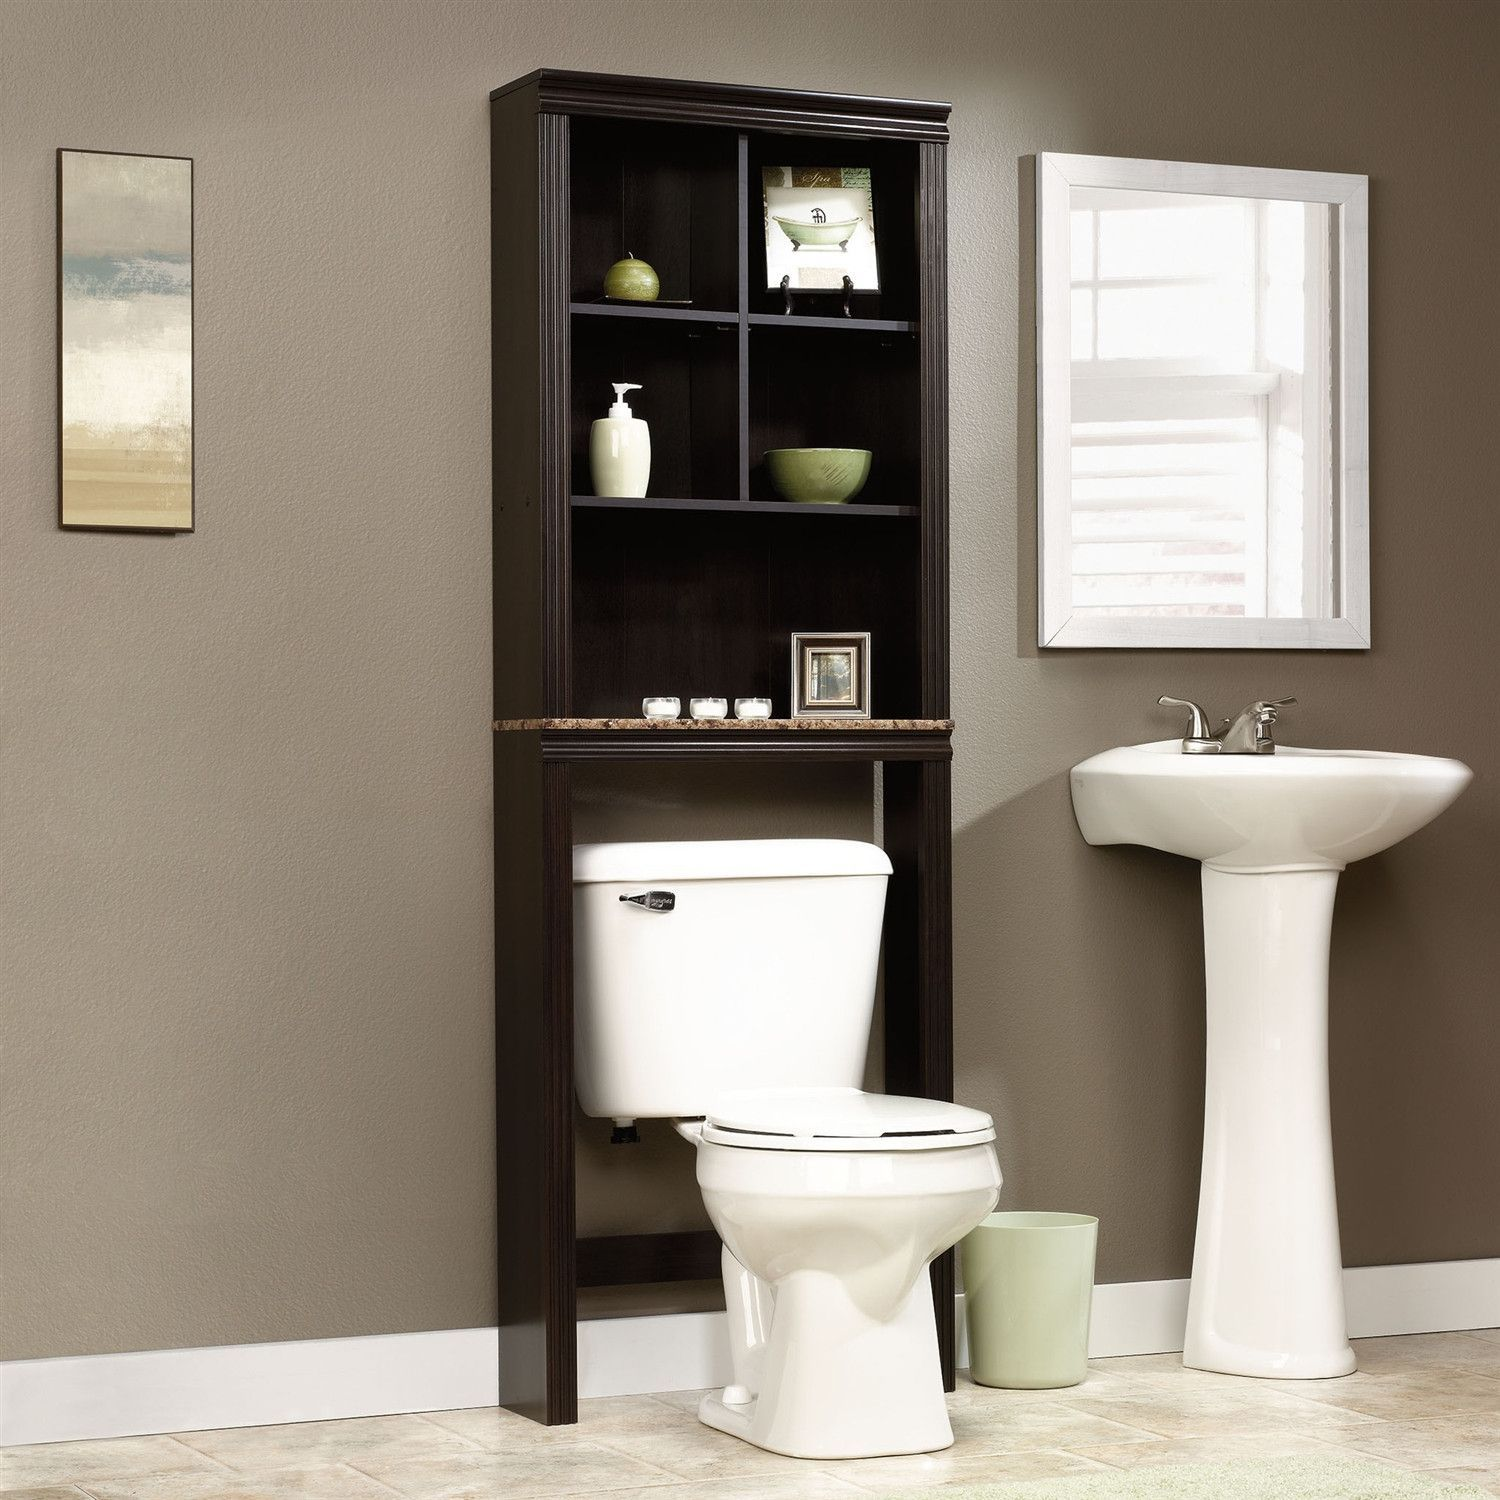 toilet most interesting floating of etagere new eyagci the bathroom elegant cove over storage michael and book cabinet stylish your com us by also a for shelf household reality in building daydream